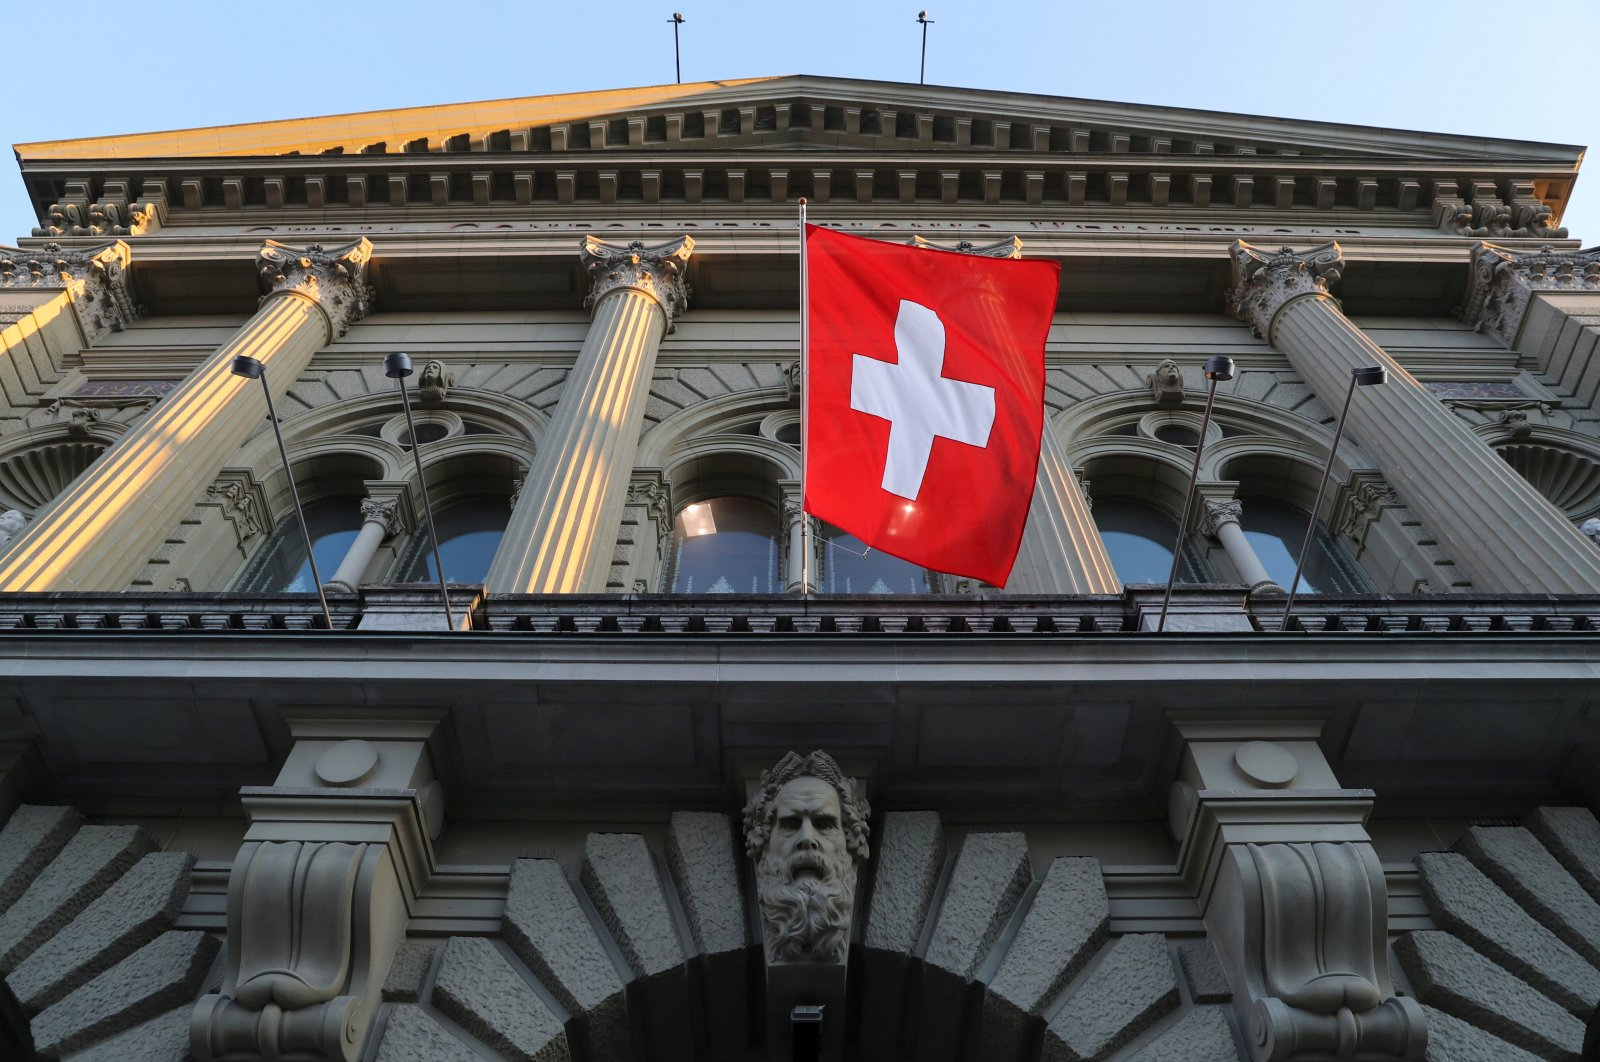 Switzerland's national flag flies at the Swiss Federal Palace (Bundeshaus), the seat of the parliament and the government, in Bern, Switzerland, March 18, 2021. (Reuters Photo)